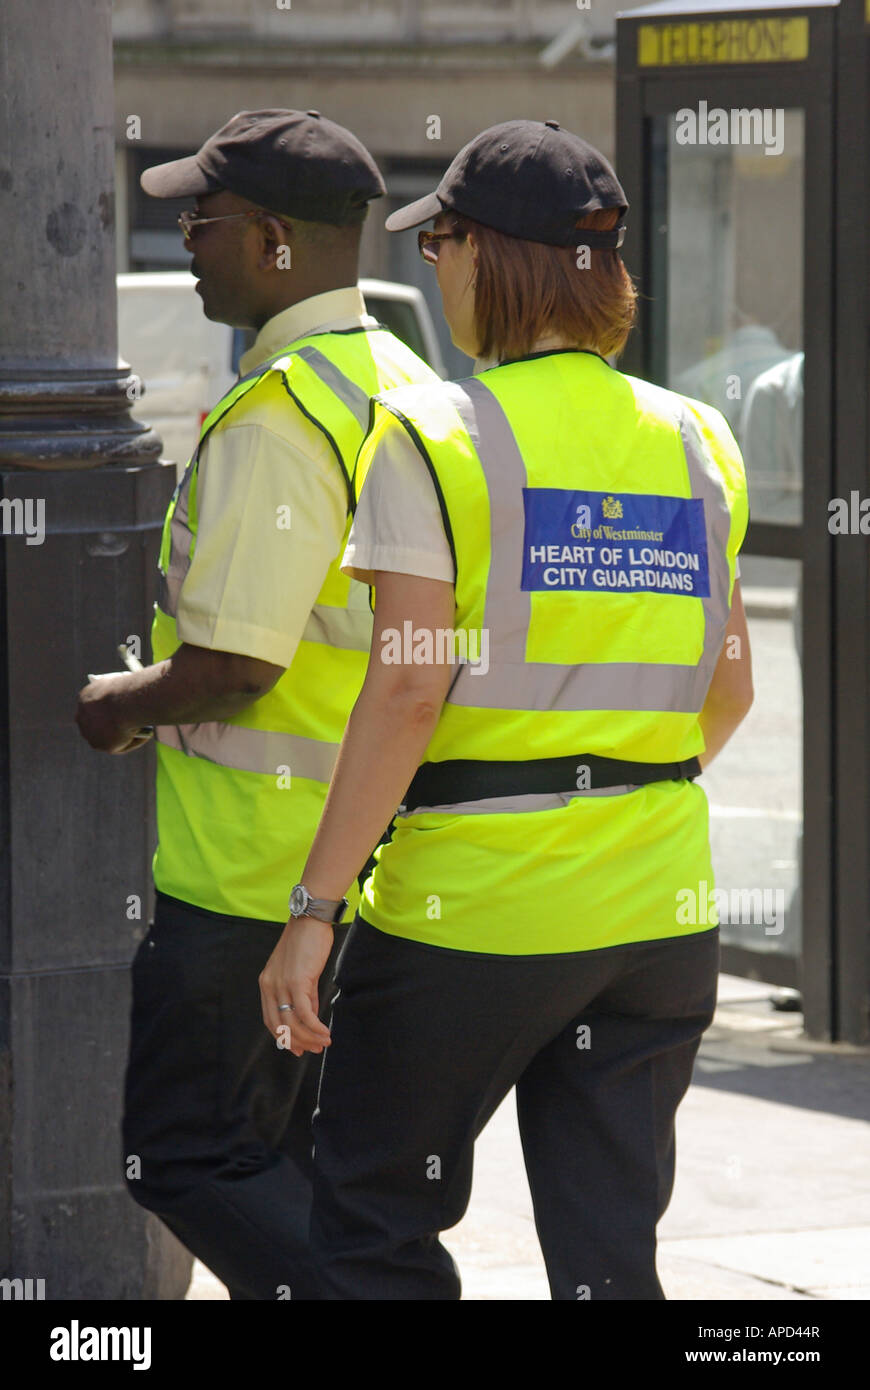 Heart of London City Guardians foot patrol run by City of Westminster Council - Stock Image